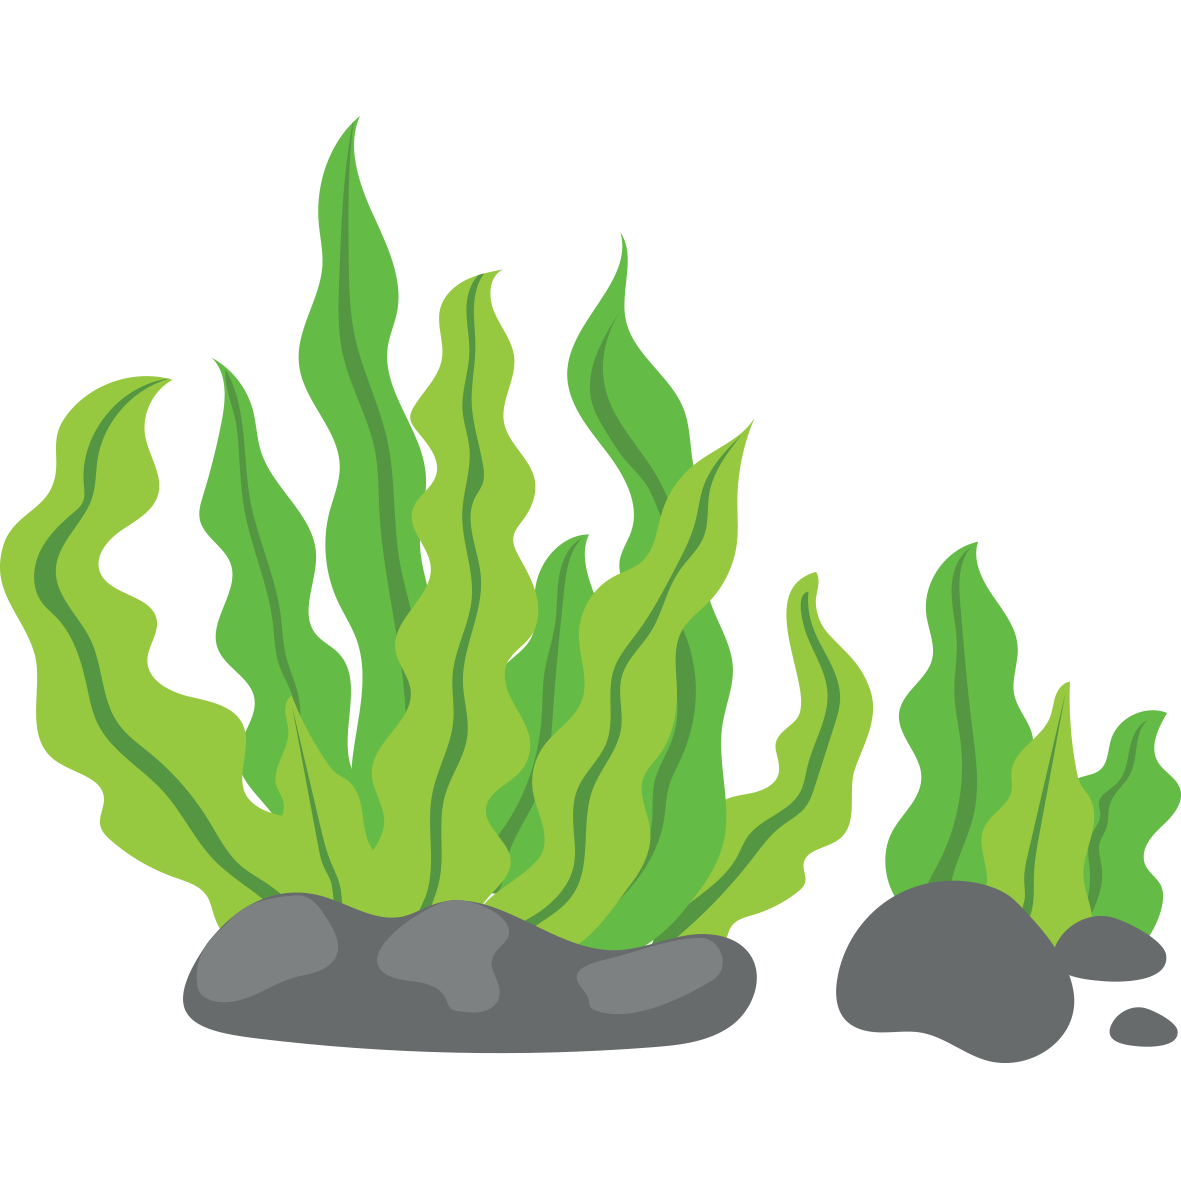 Clipart grass seaweed. Clip art green background